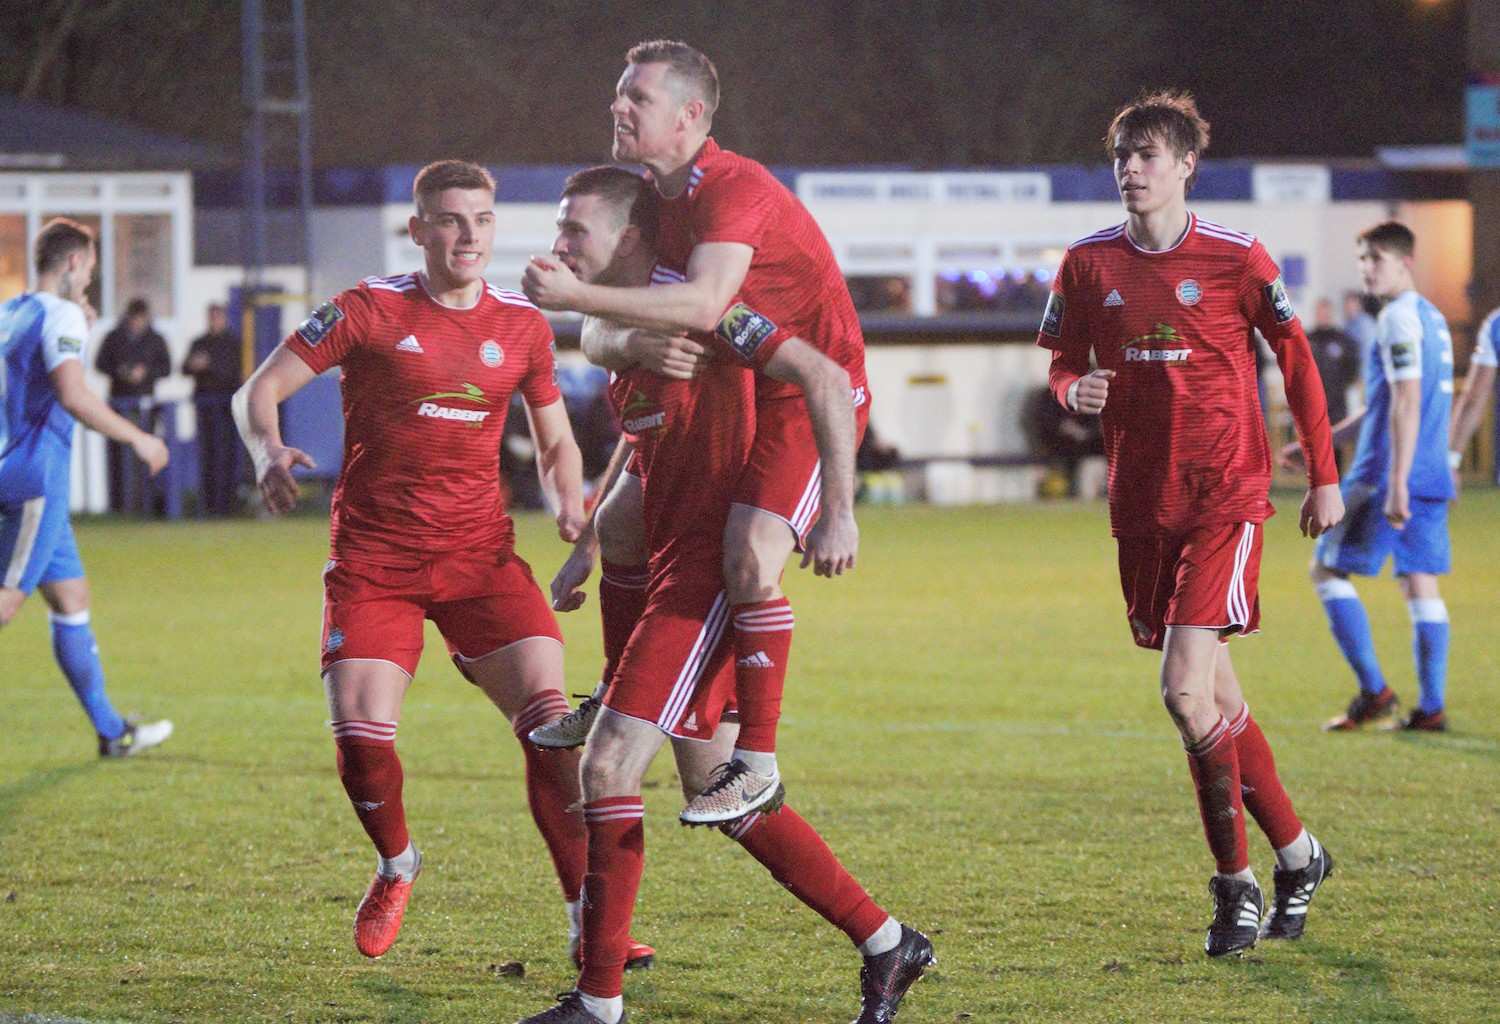 Read the full article - Gallery: Tonbridge Angels [A] – League